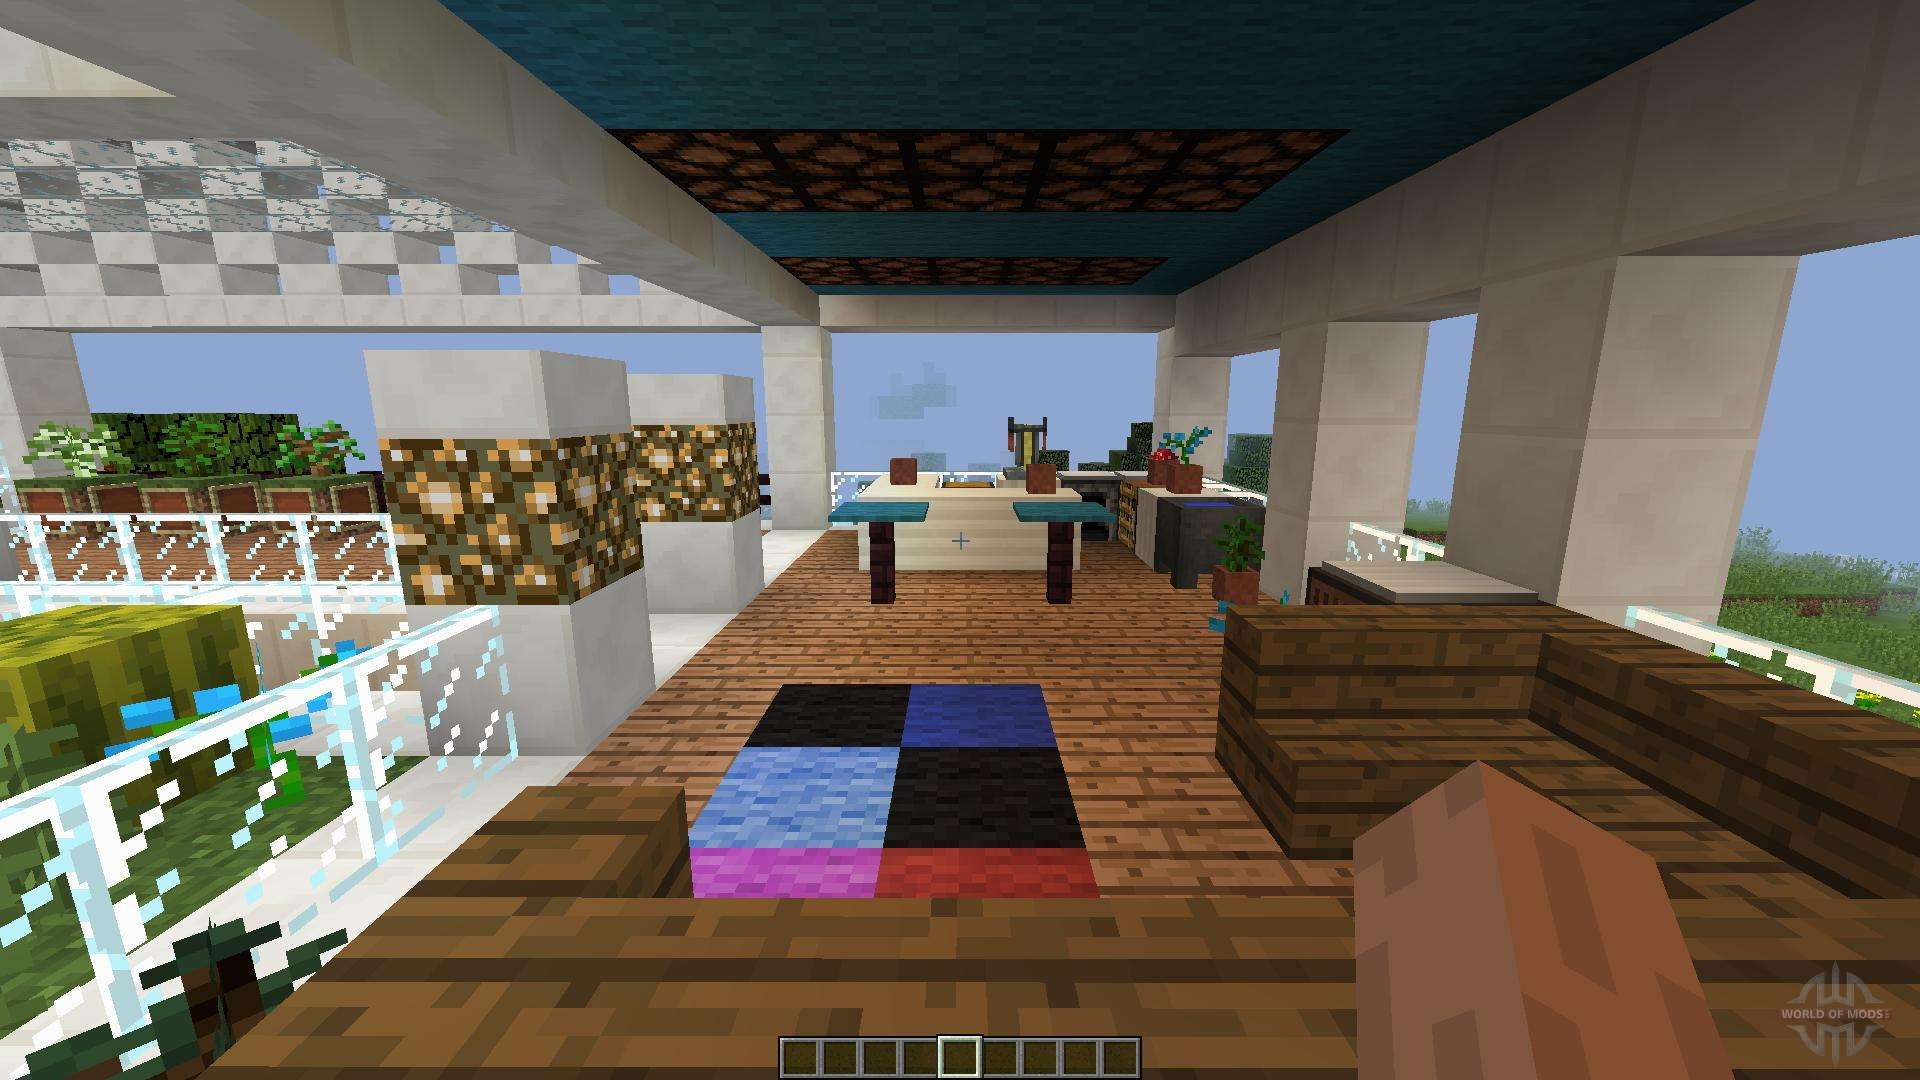 Maison moderne minecraft a telecharger free hd wallpapers for Modele maison minecraft